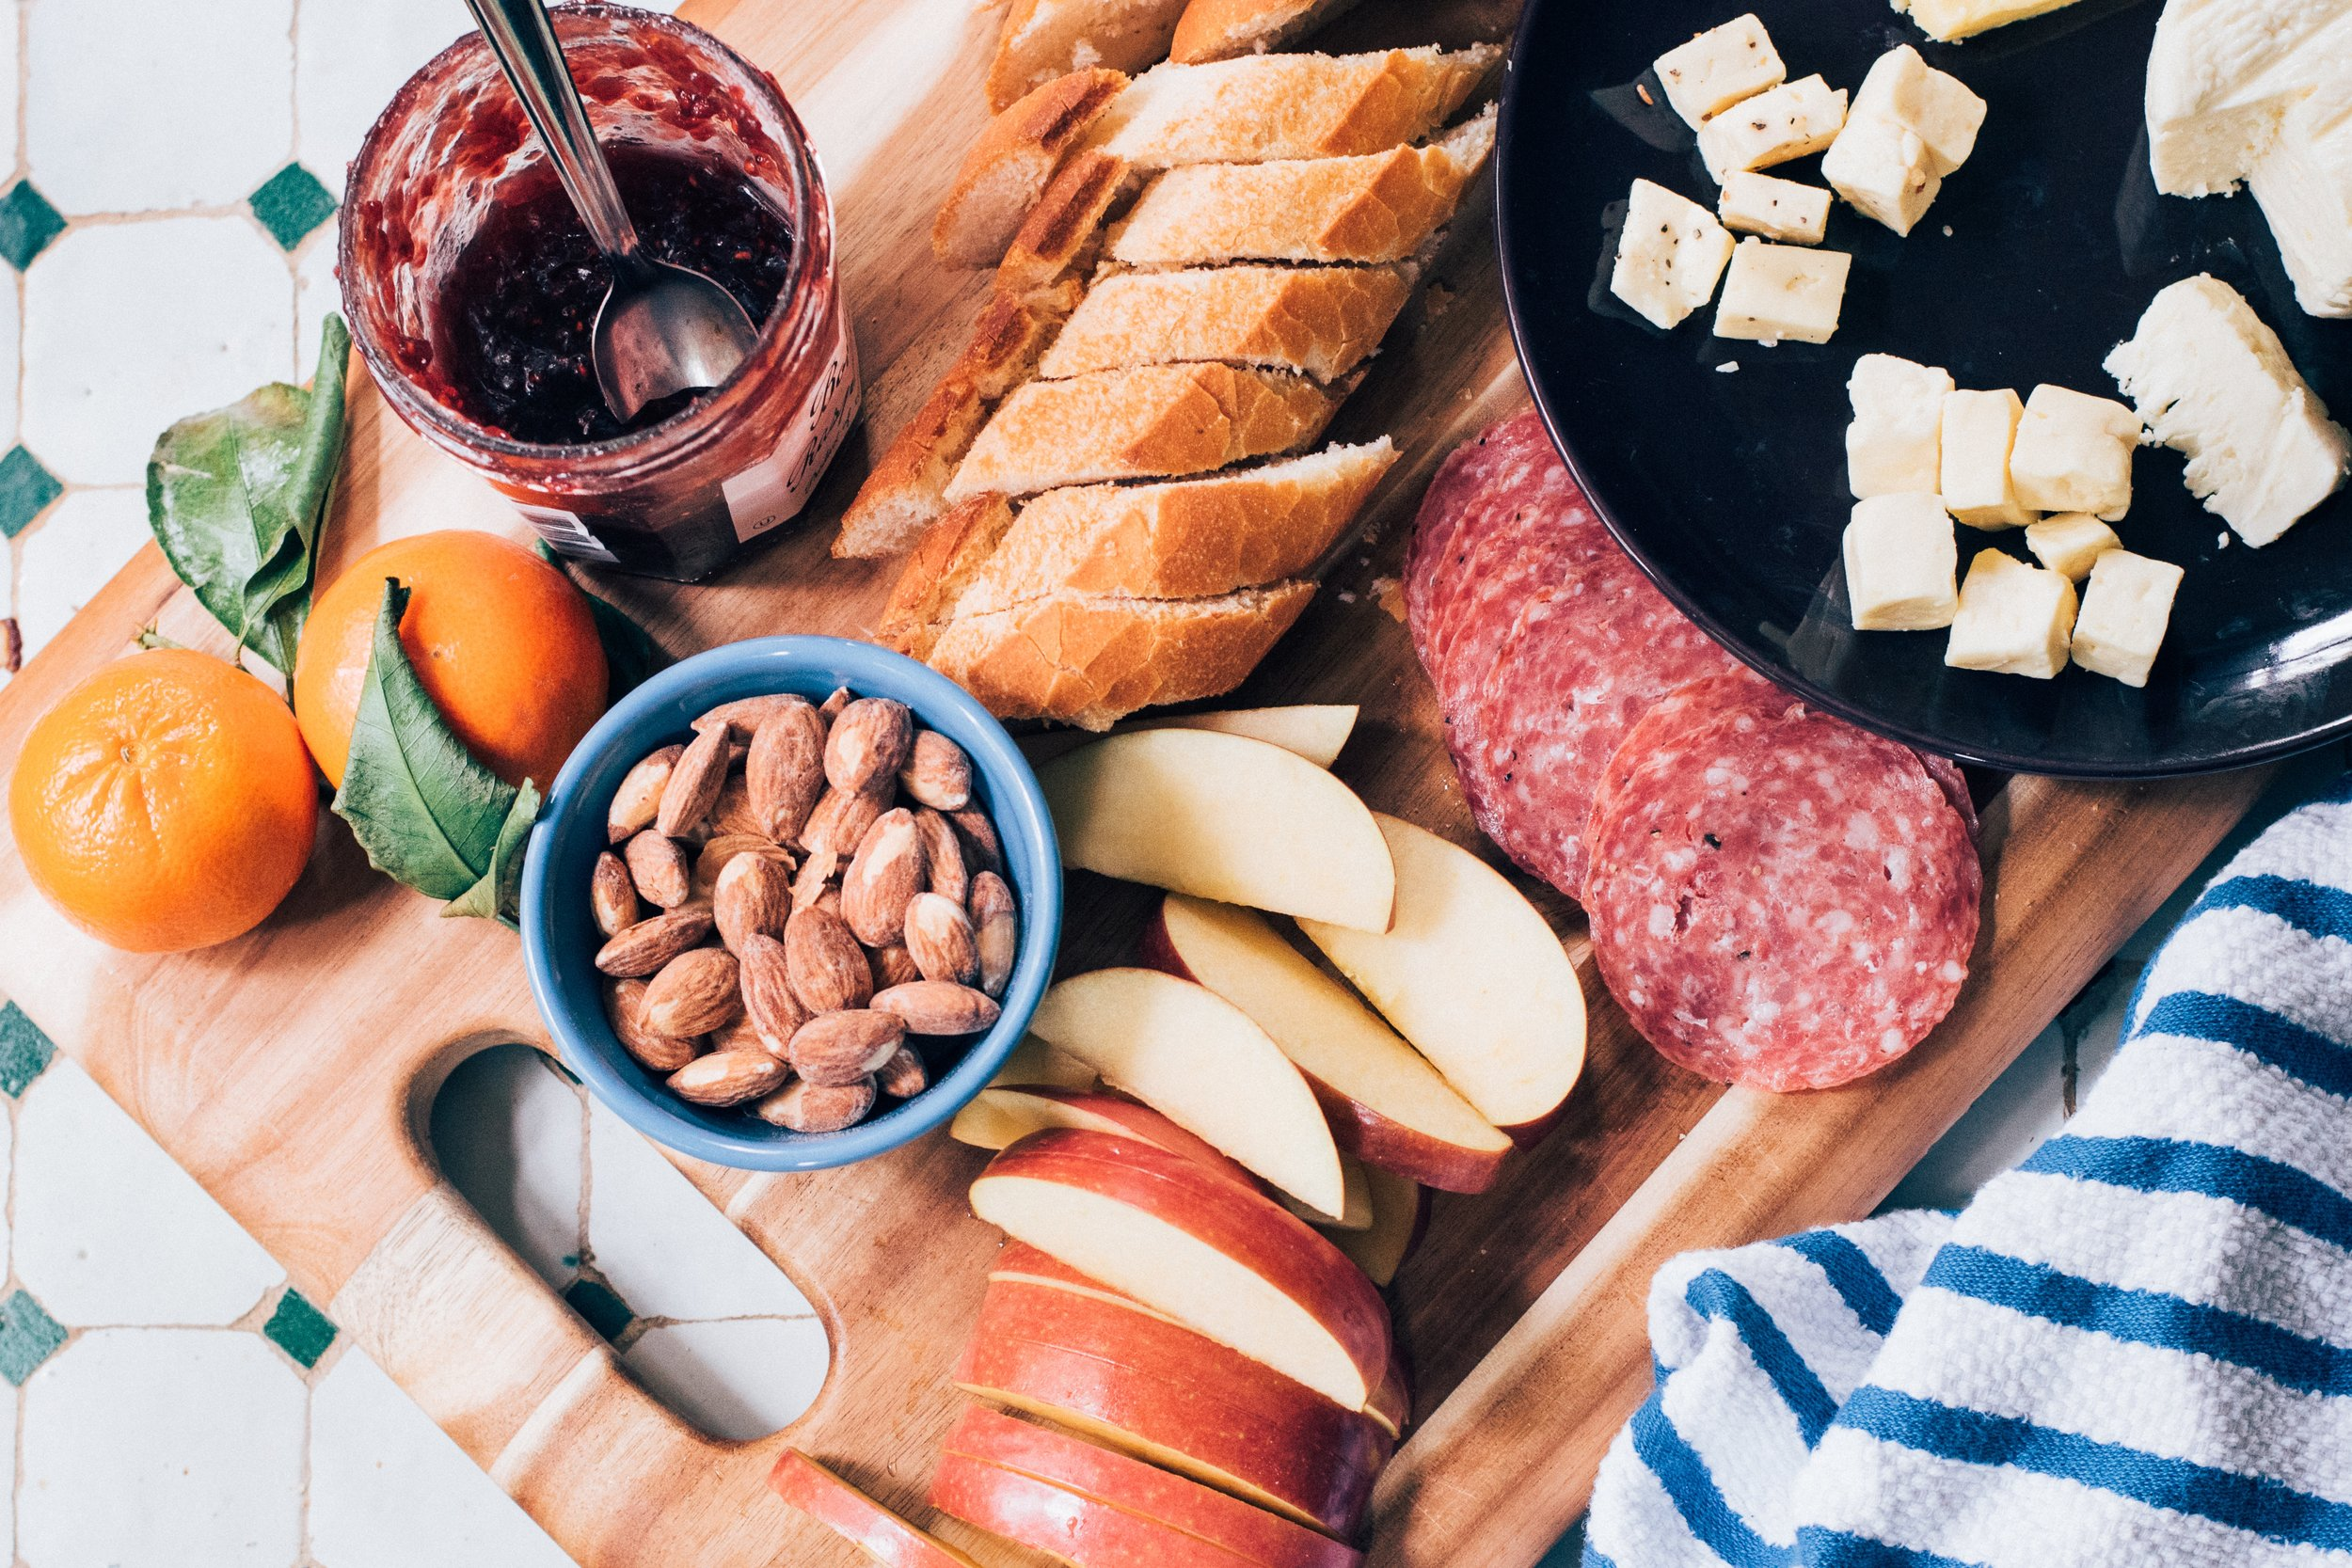 Your average snack board. A handful of almonds is 162 calories, 1 apple is 80 calories, 6 pepperoni slices is 100 calories, 1 baguette is 552 calories, an entire wedge of brie cheese is 522 calories, a spoon of jam is 26 calories, an orange is 64 calories. *This is a rough estimate thanks to Google and Tesco Online's product nutritional information